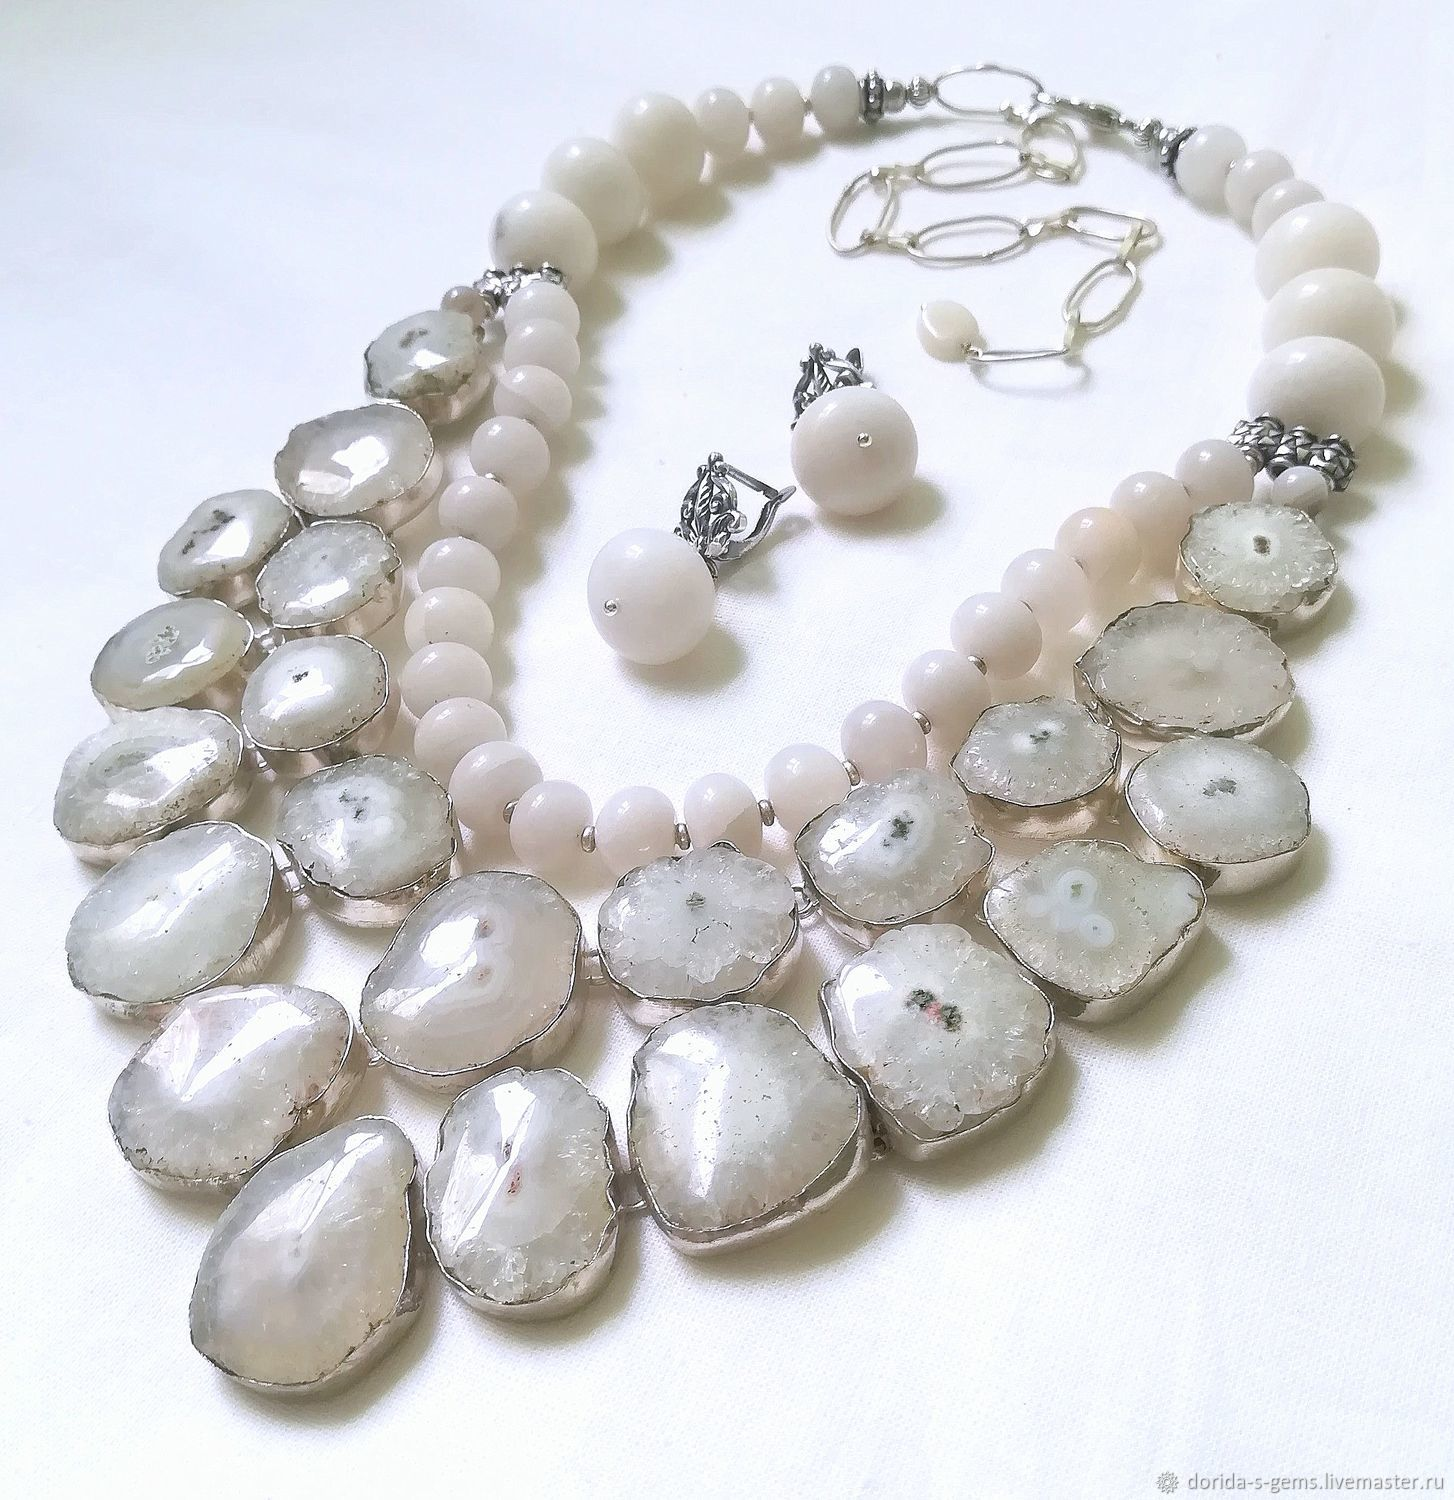 necklace, designer necklace, necklace for every day necklace out, the necklace of agate, agate necklace, necklace for gift, agate beads, beads stones, jewelry, agate